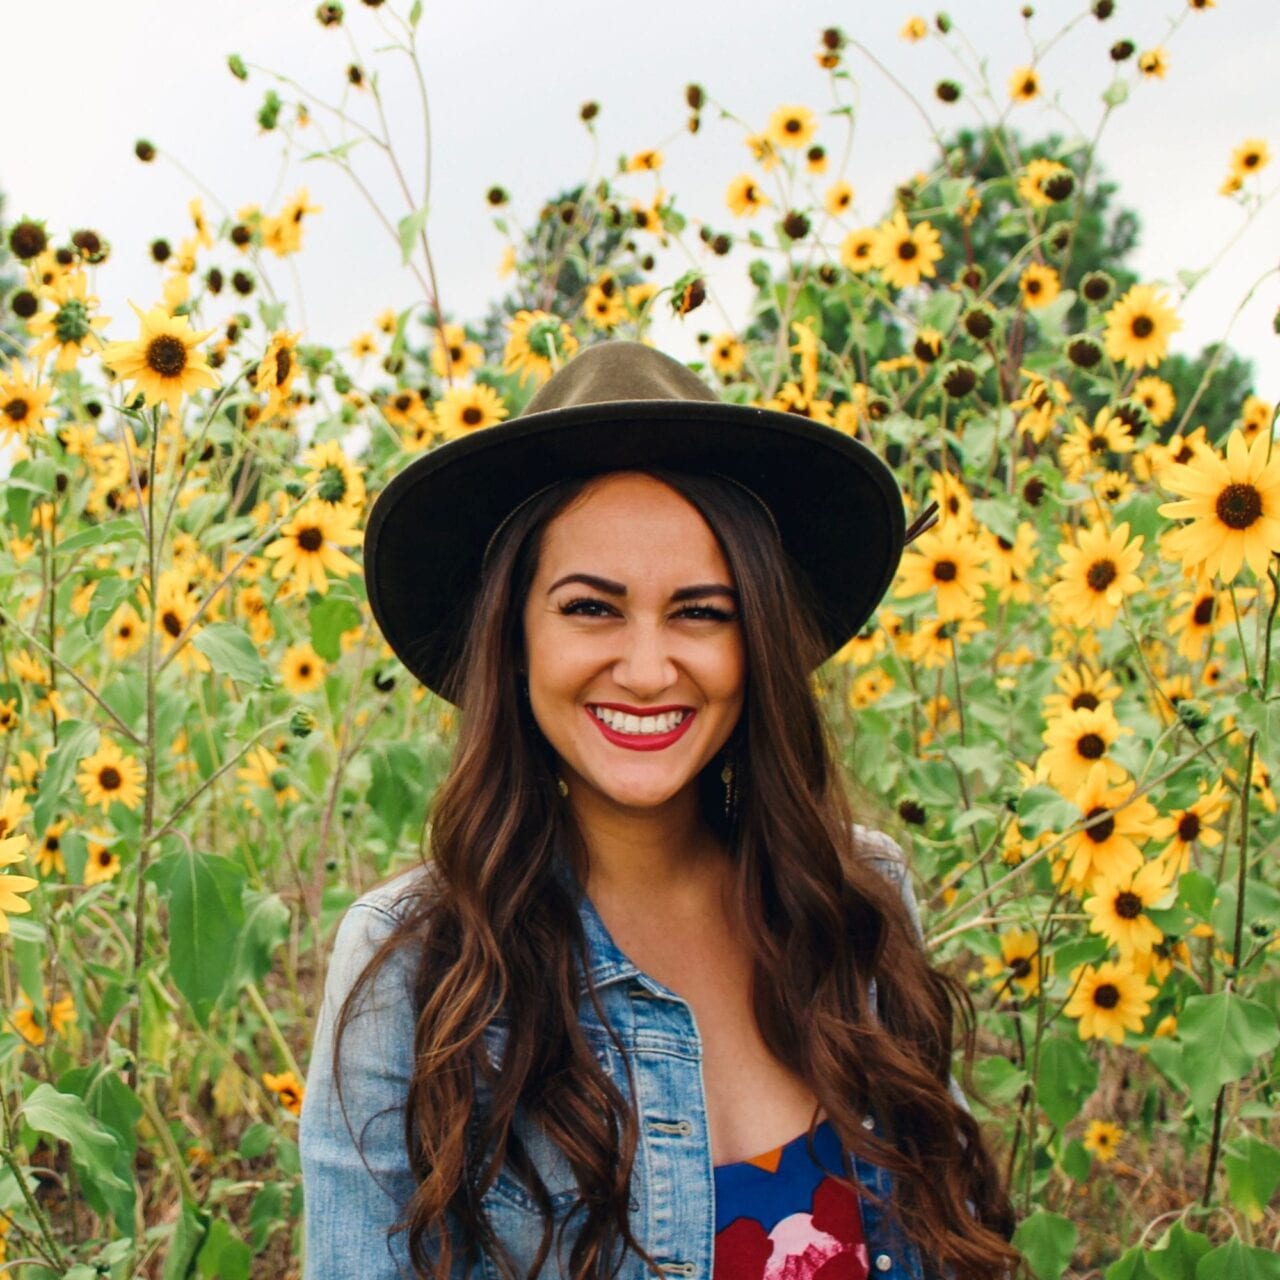 A woman wearing a denim jacket and a brown hat stands in a field of wildflowers.